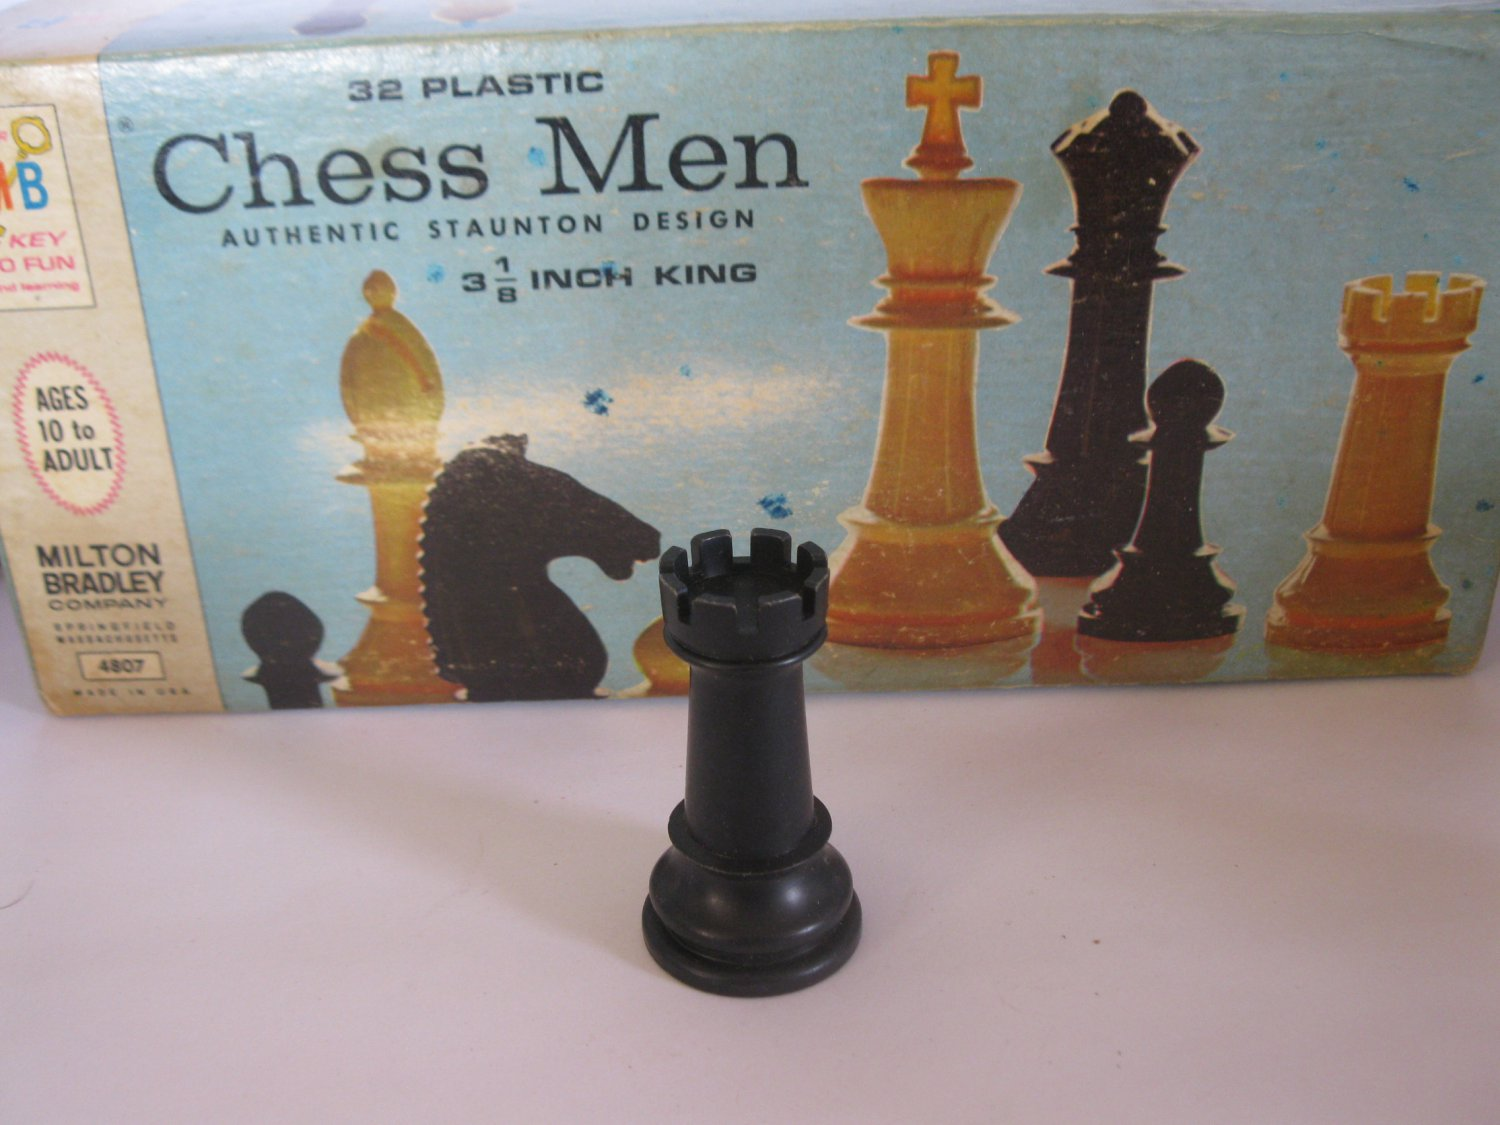 1969 Chess Men Board Game Piece: Authentic Stauton Design - Black Rook